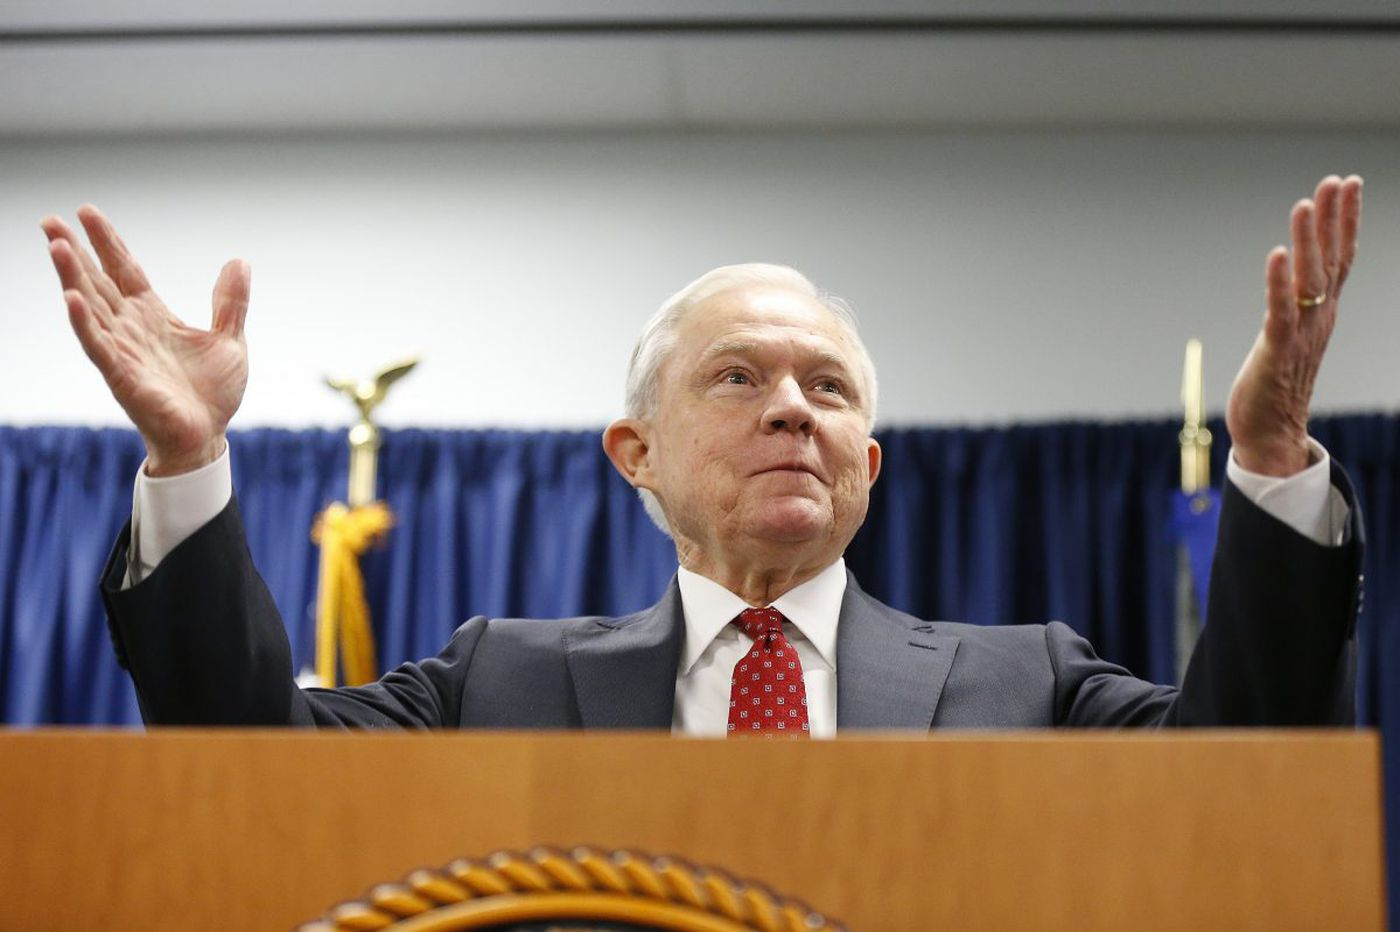 Jeff Sessions blasts 'sanctuary cities' in Philly appearance